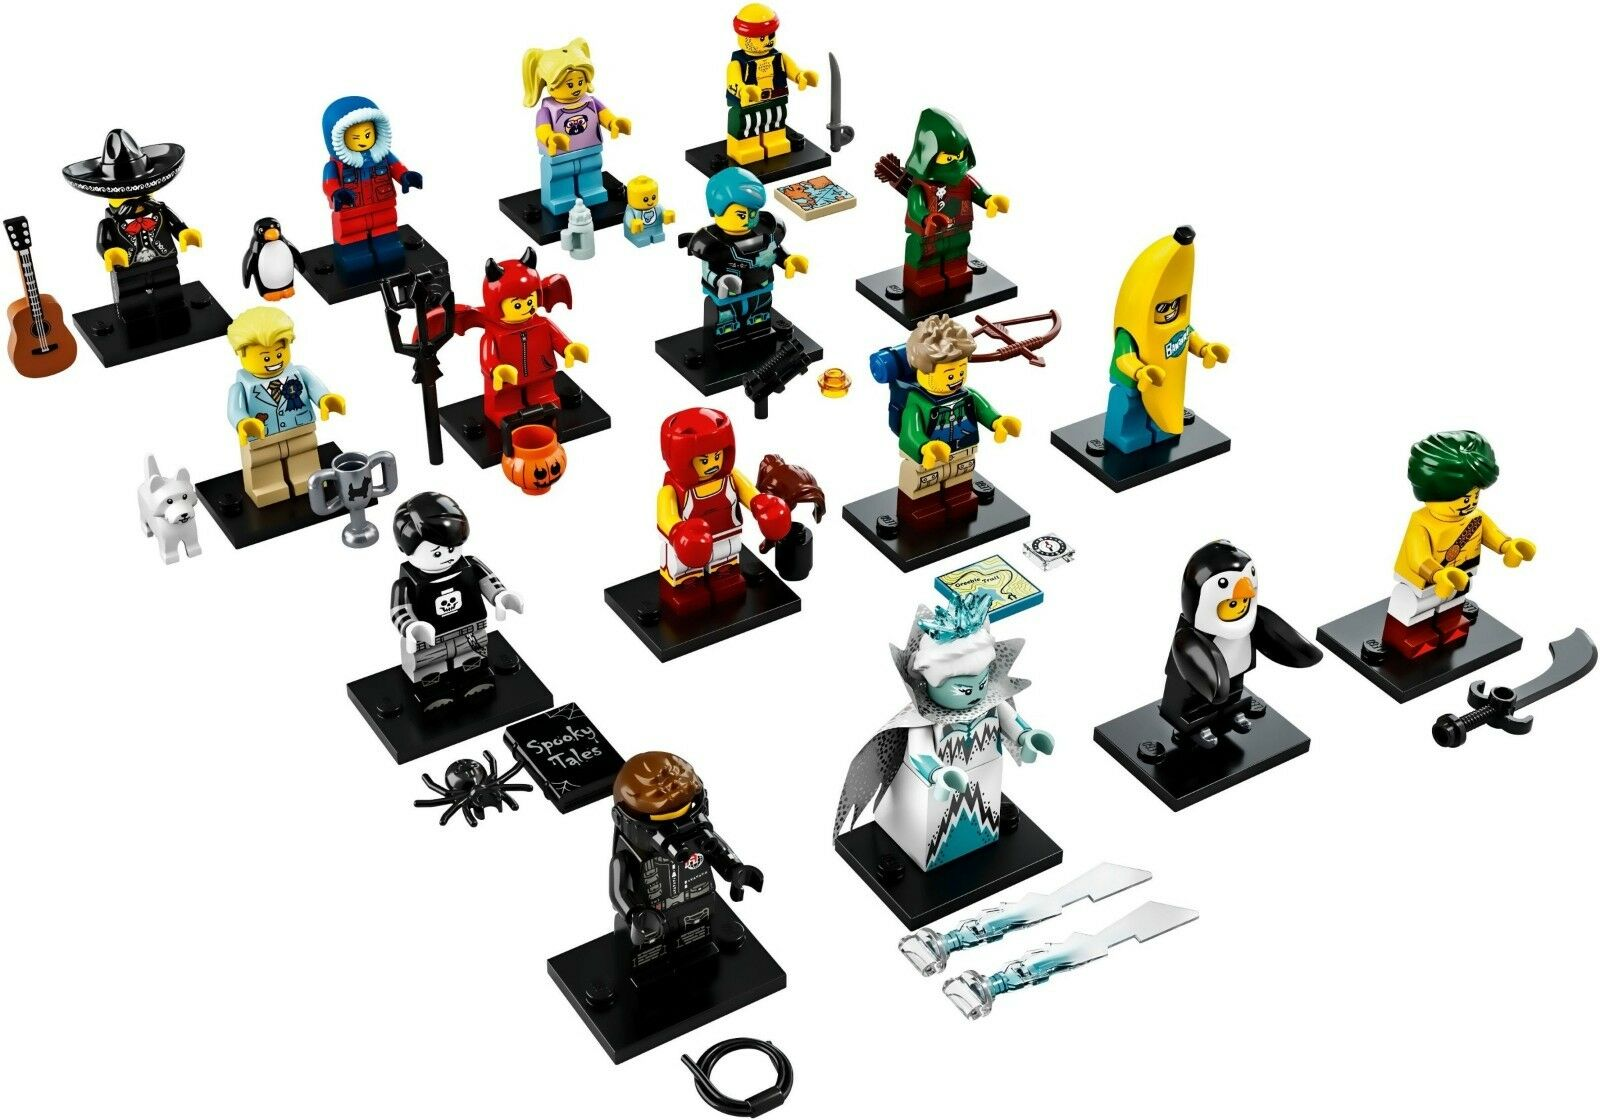 LEGO 71013 MINIFIGURE MINIFIGURE MINIFIGURE SERIES 16, Full Set of 16 minifigures, Complete, Fast ship f82bb5